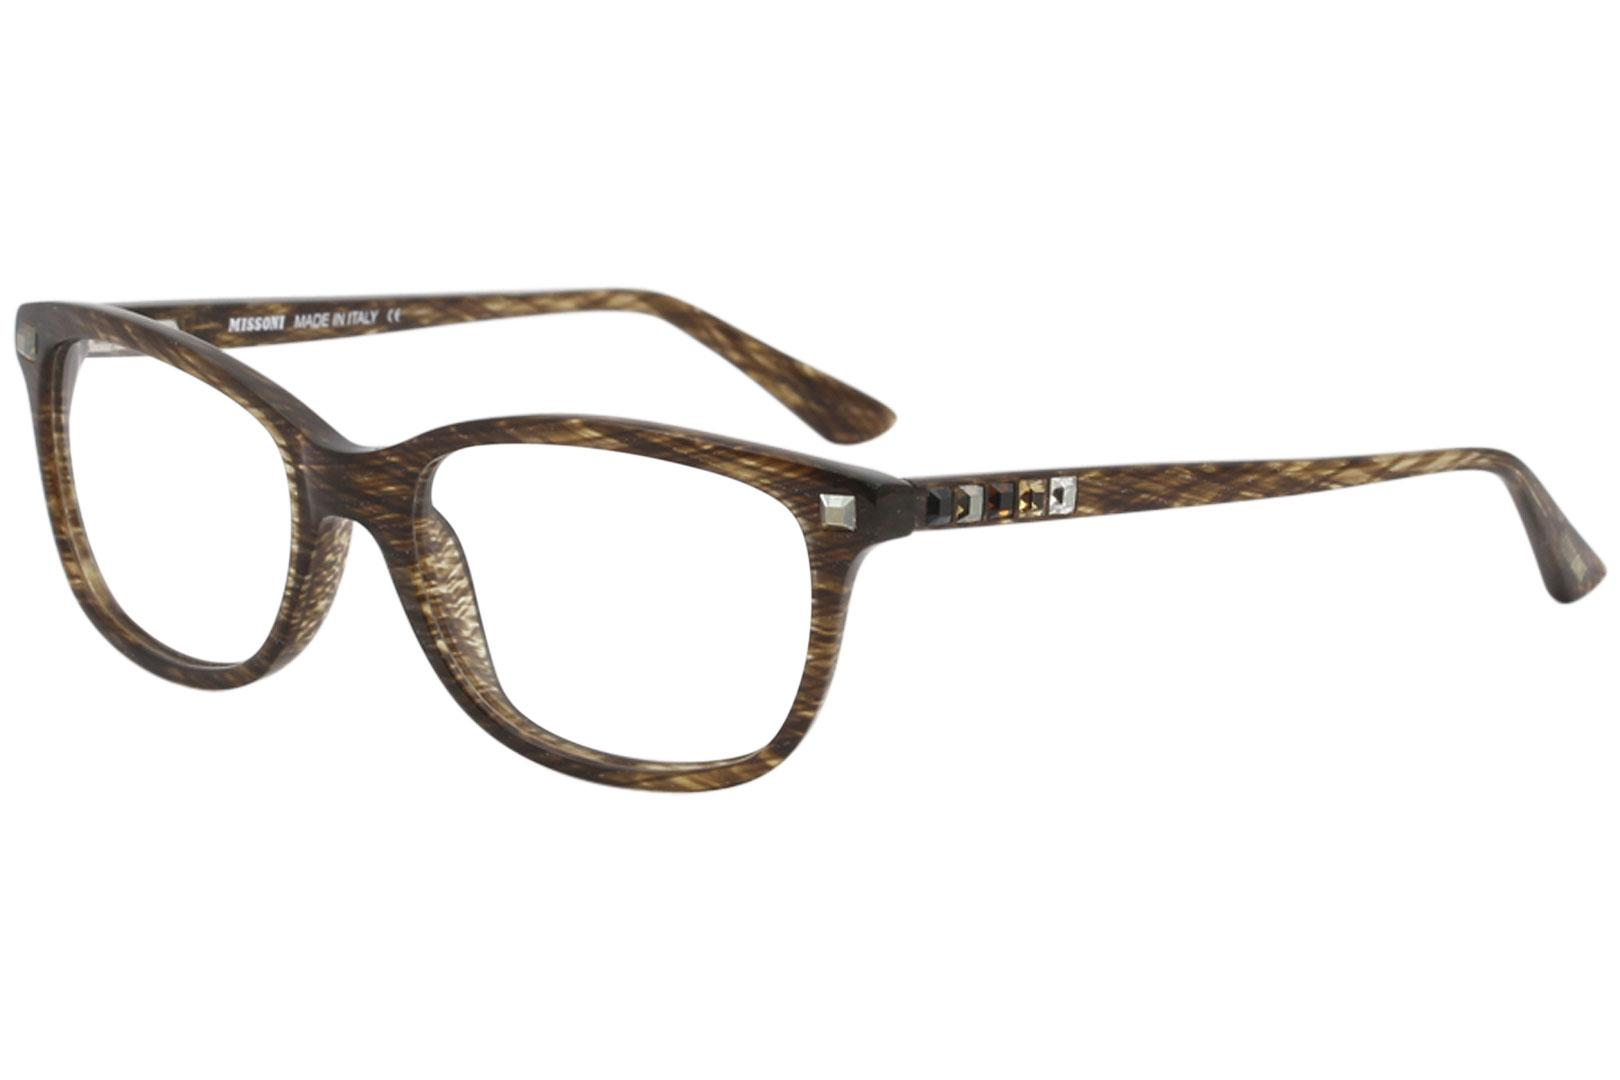 Image of Missoni Women's Eyeglasses MI283V MI/283/V Full Rim Optical Frame - Tortoise w/Crystal Accents   03 - Lens 52 Bridge 17 Temple 135mm